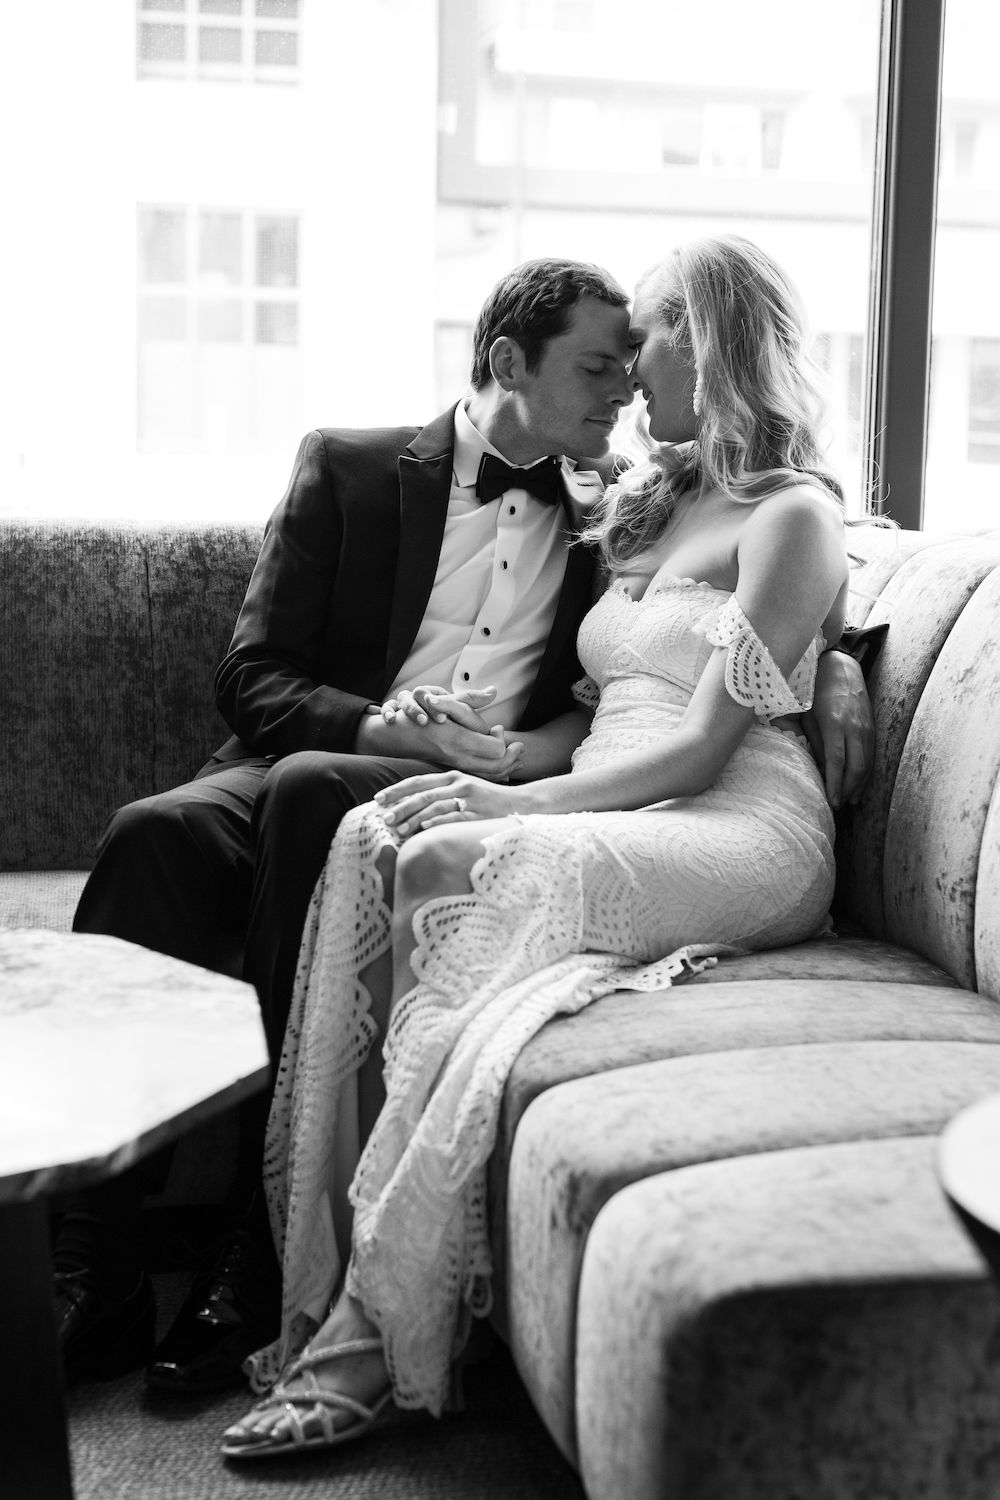 Aaron Snow Photography Oklahoma Wedding Photographer 21C Hotel OKC Bride Groom Kissing Couch lobby Trinian O'Neil Carson